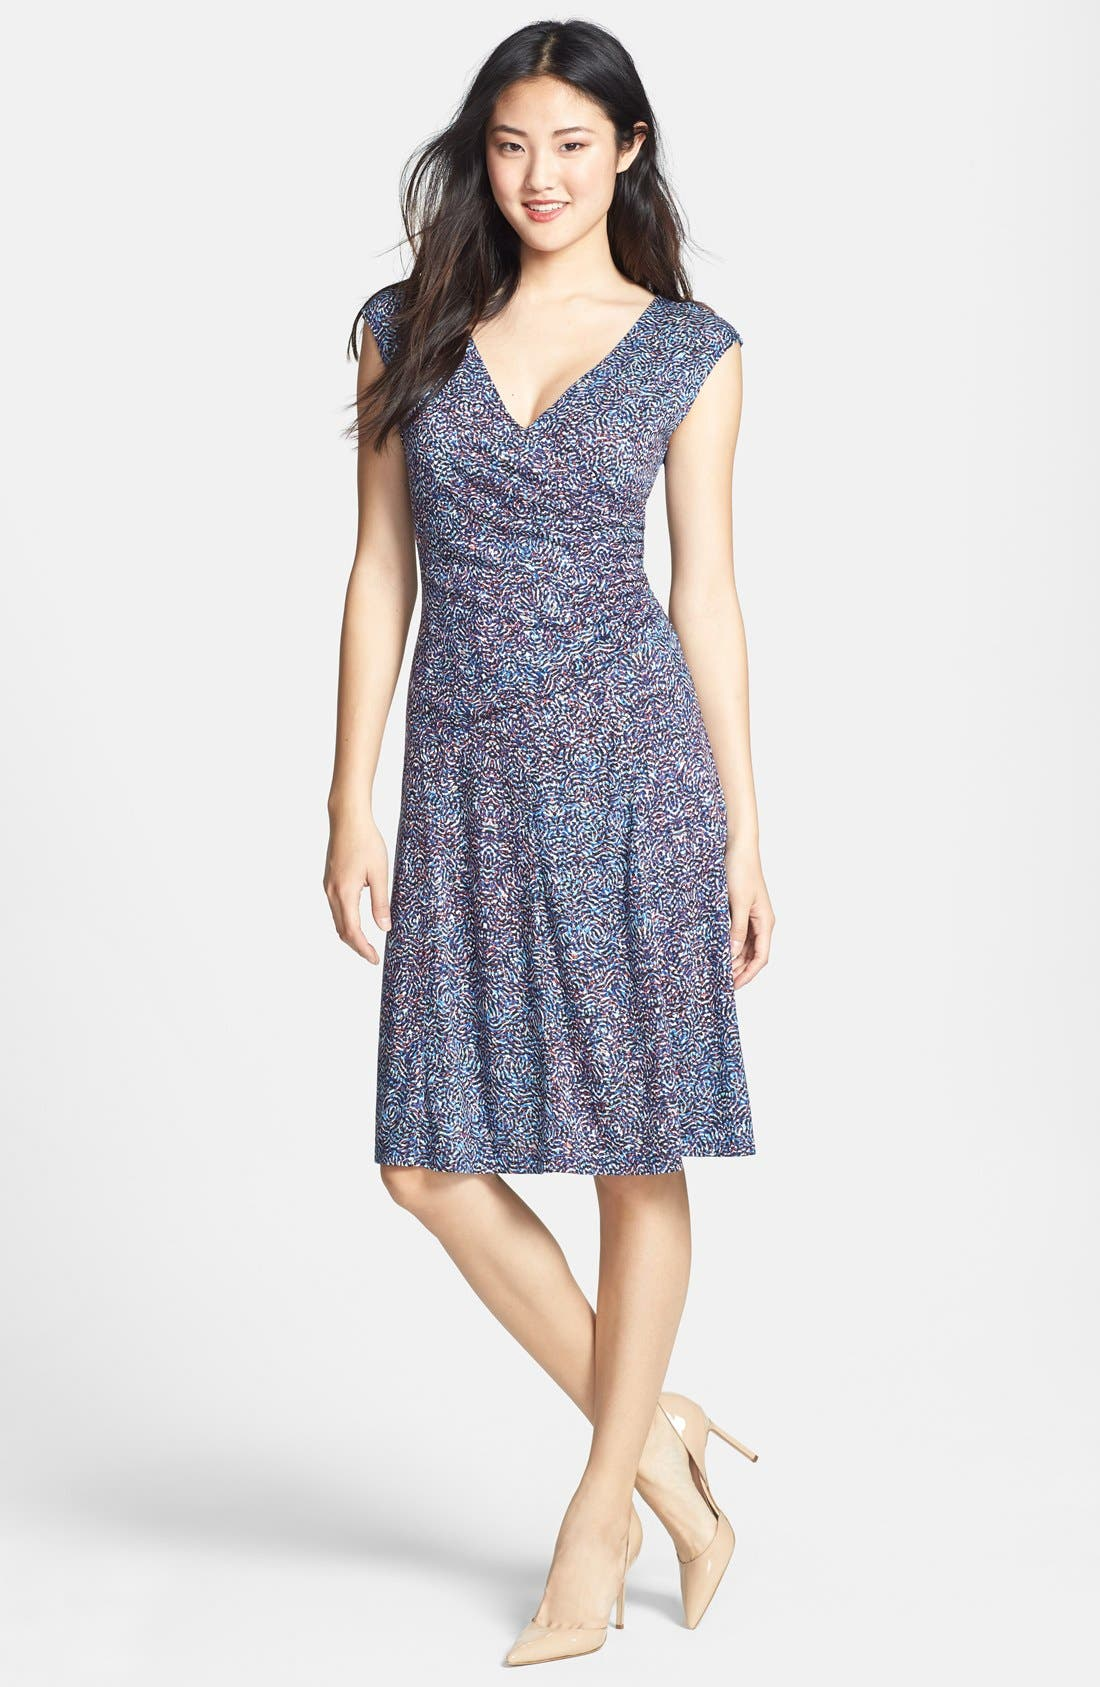 Alternate Image 1 Selected - NIC+ZOE 'Mosaic' Fit & Flare Dress (Regular & Petite)